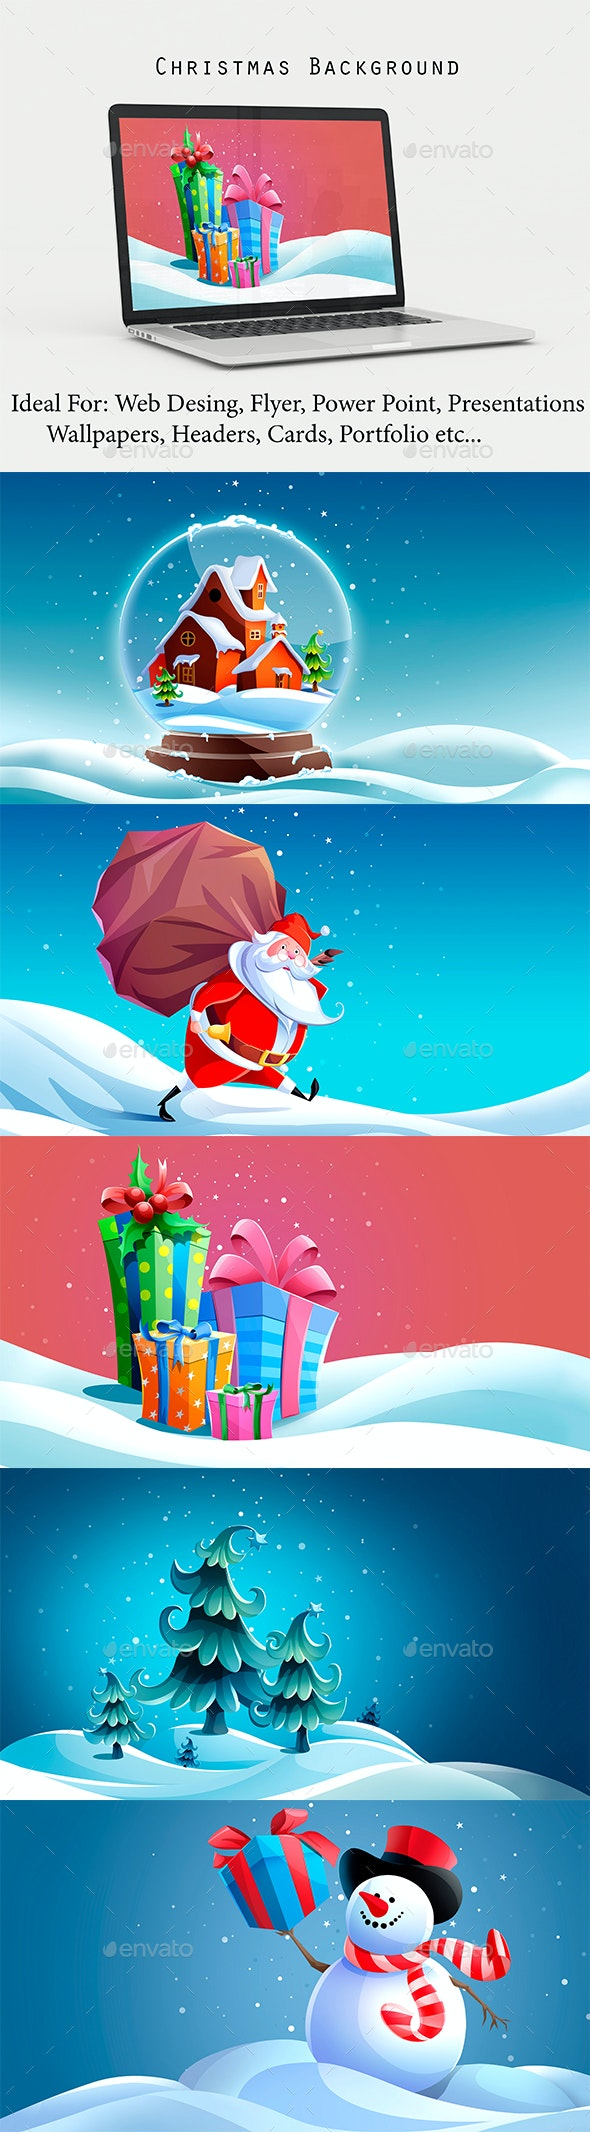 Christmas Background - Backgrounds Graphics